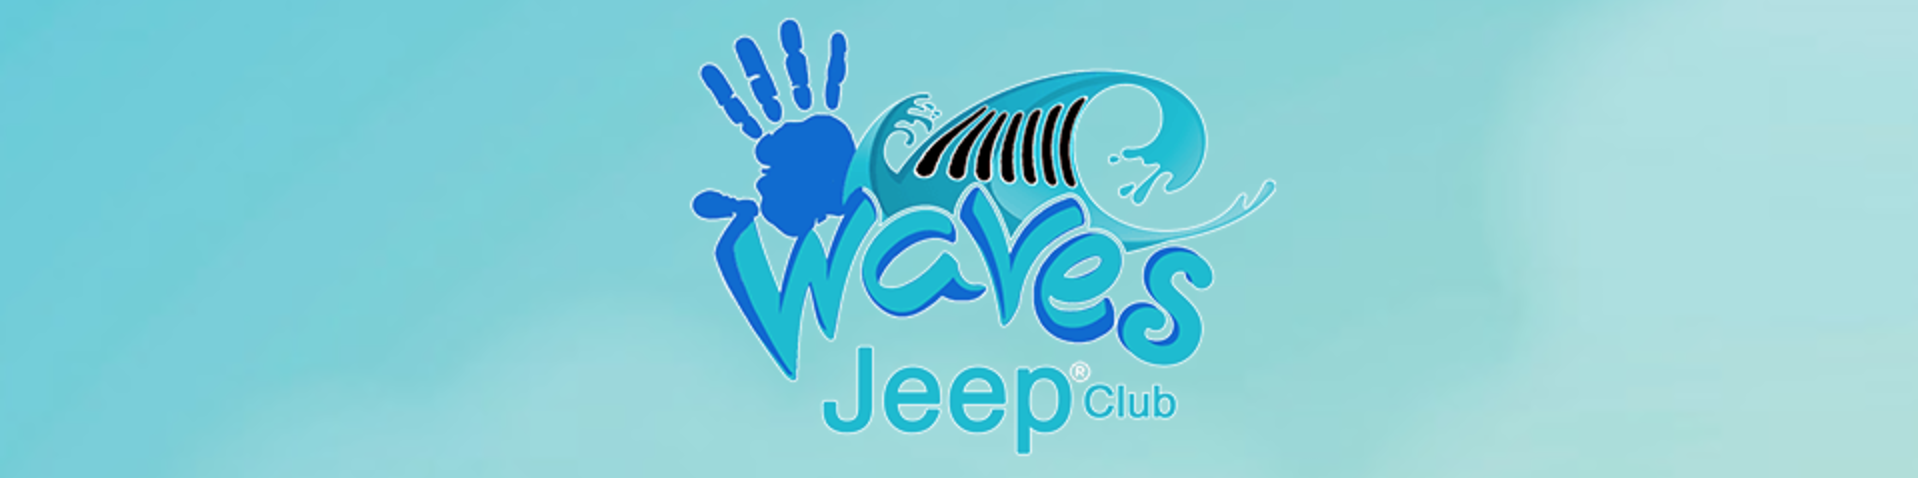 Jeep Waves Club